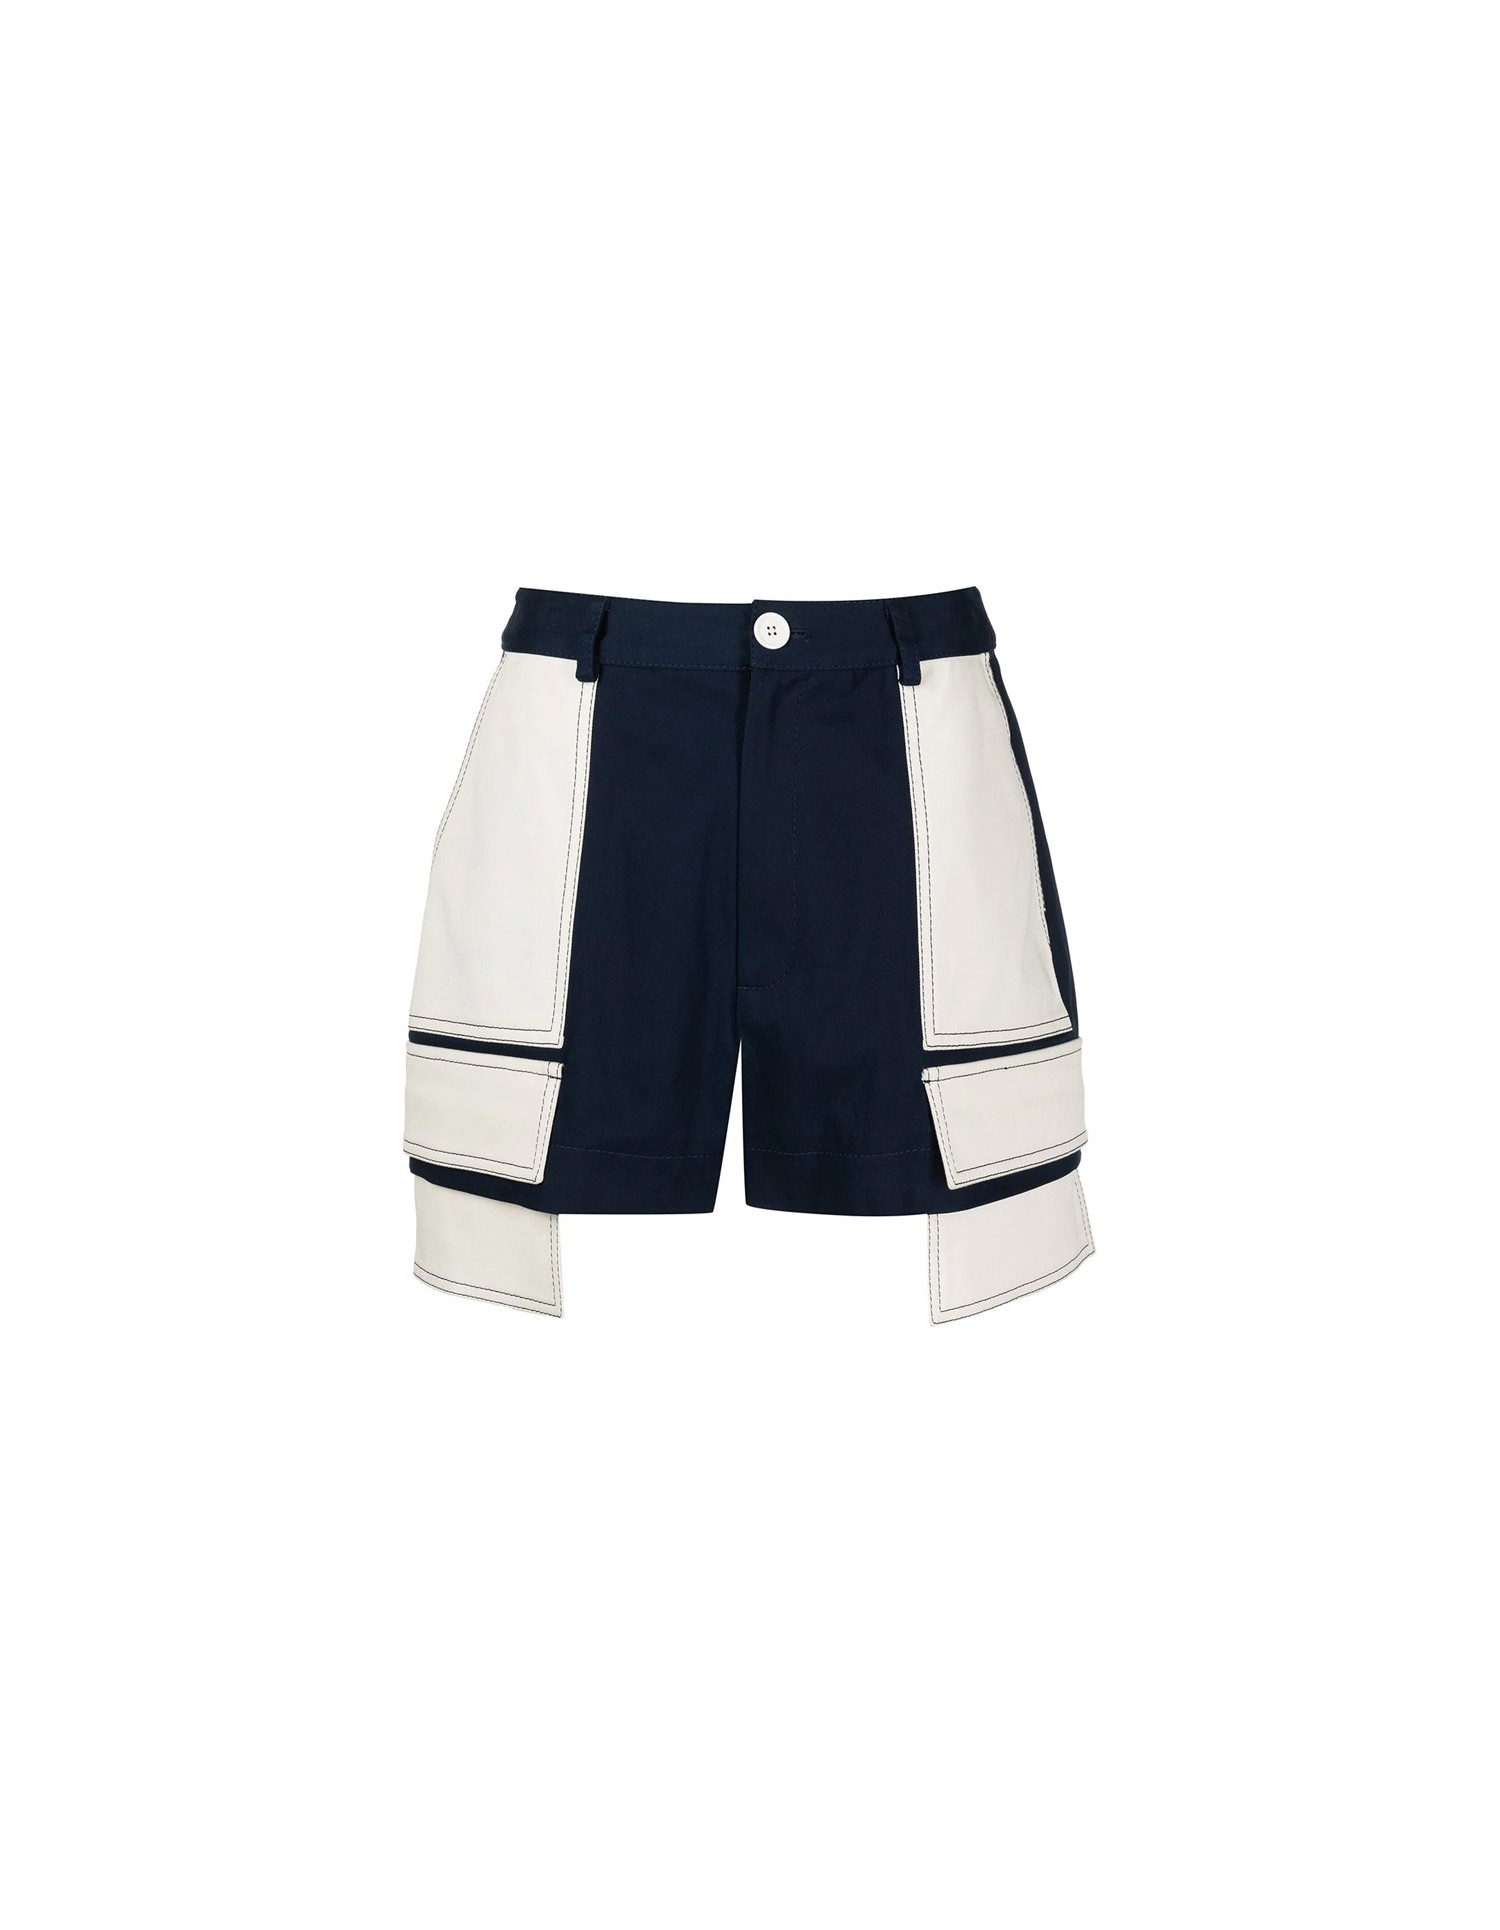 MONSE Extended Patch Pocket Shorts in Midnight and Ivory on Model No Background Side